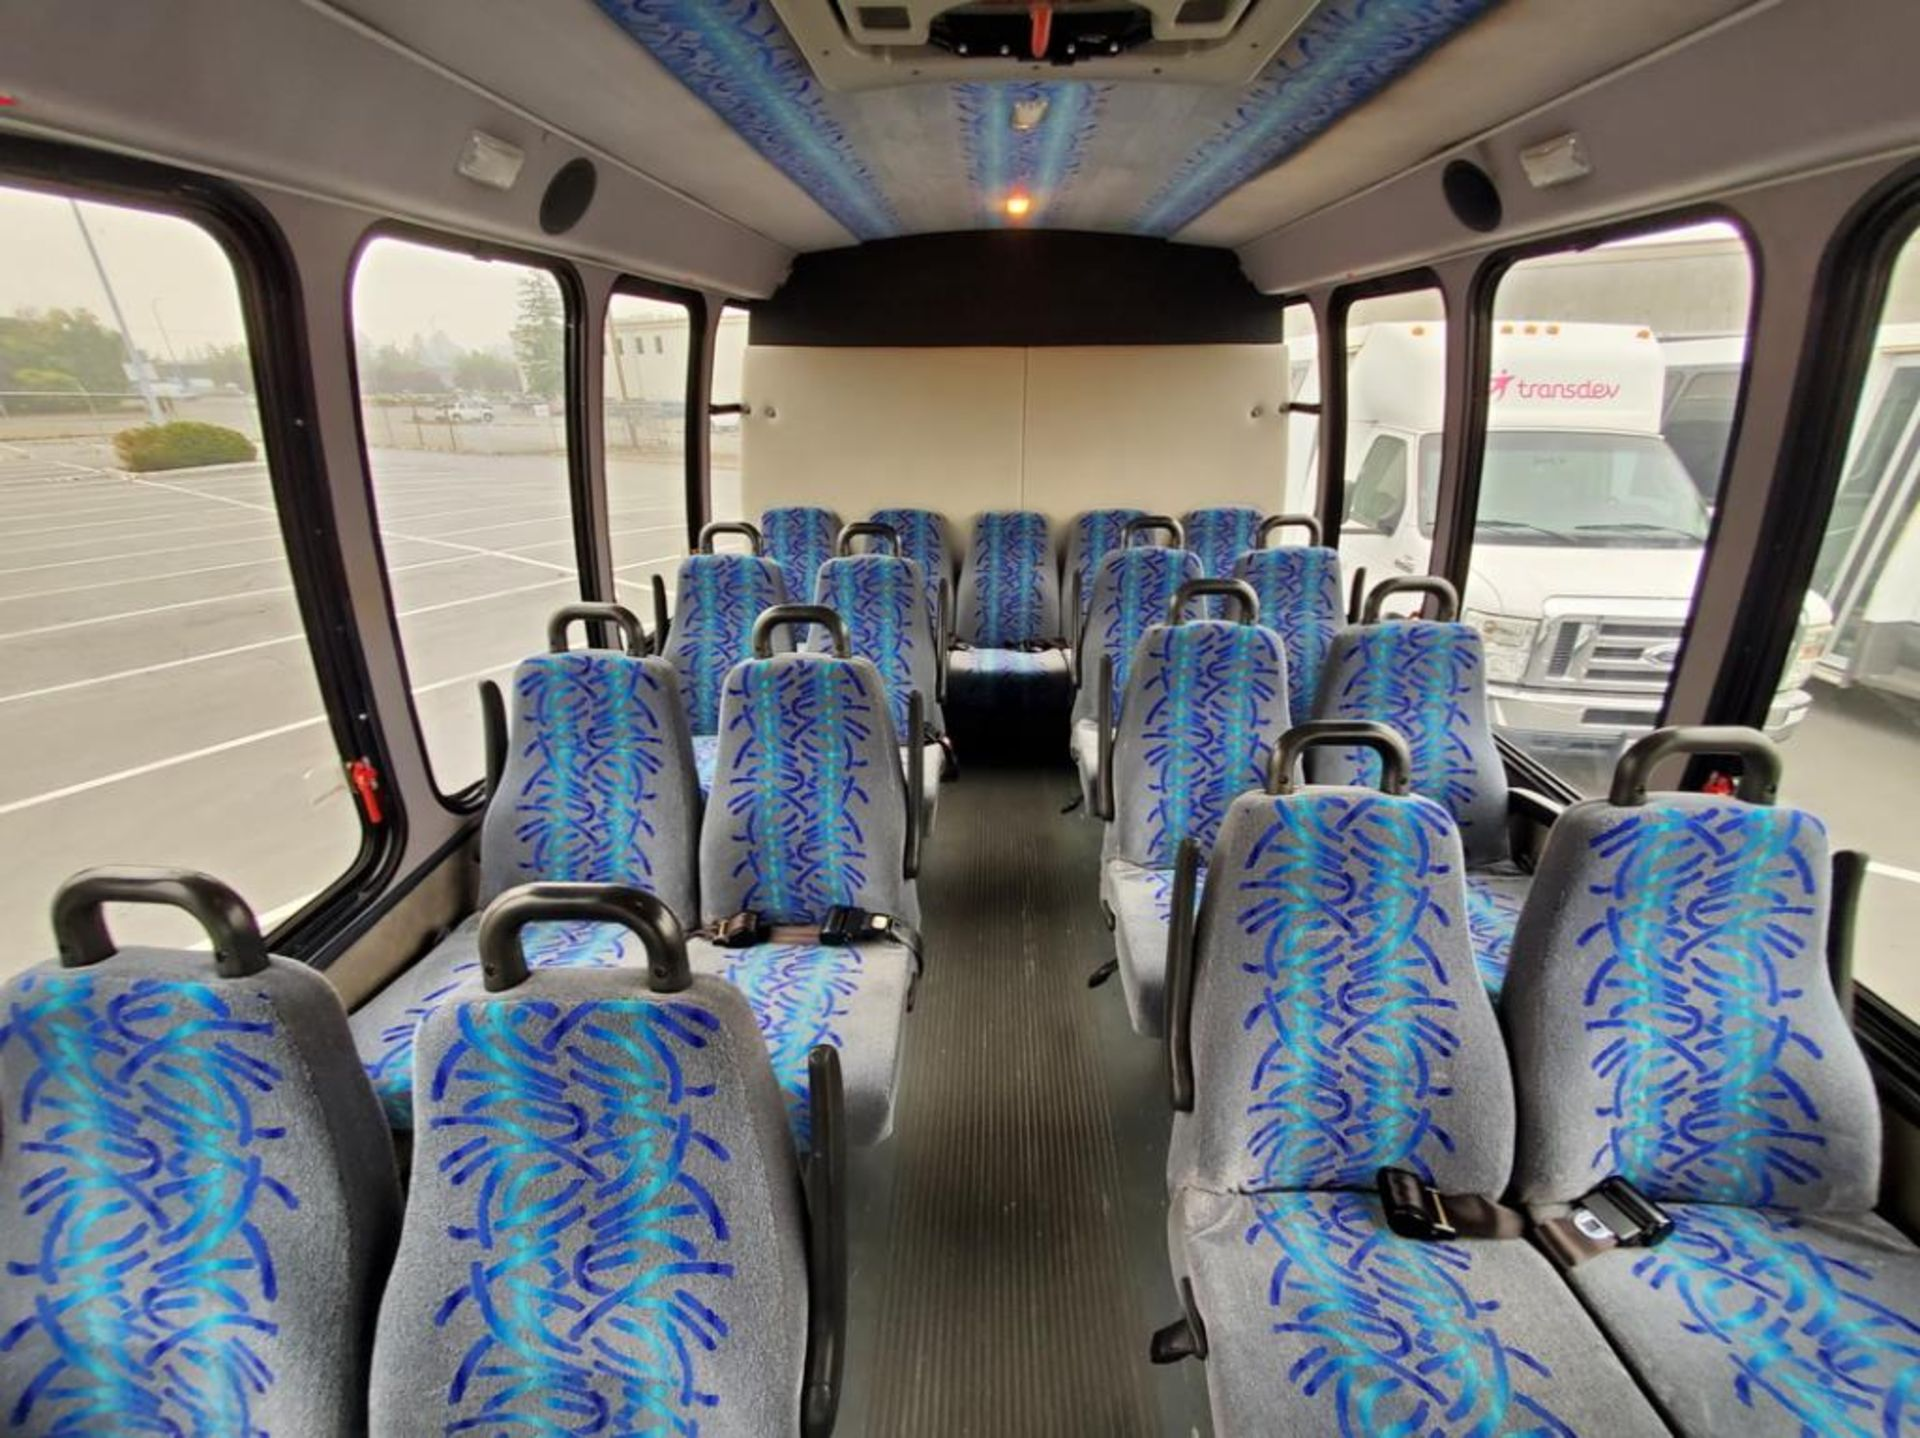 FORD E450 Turtle Top Shuttle Bus - Image 14 of 15